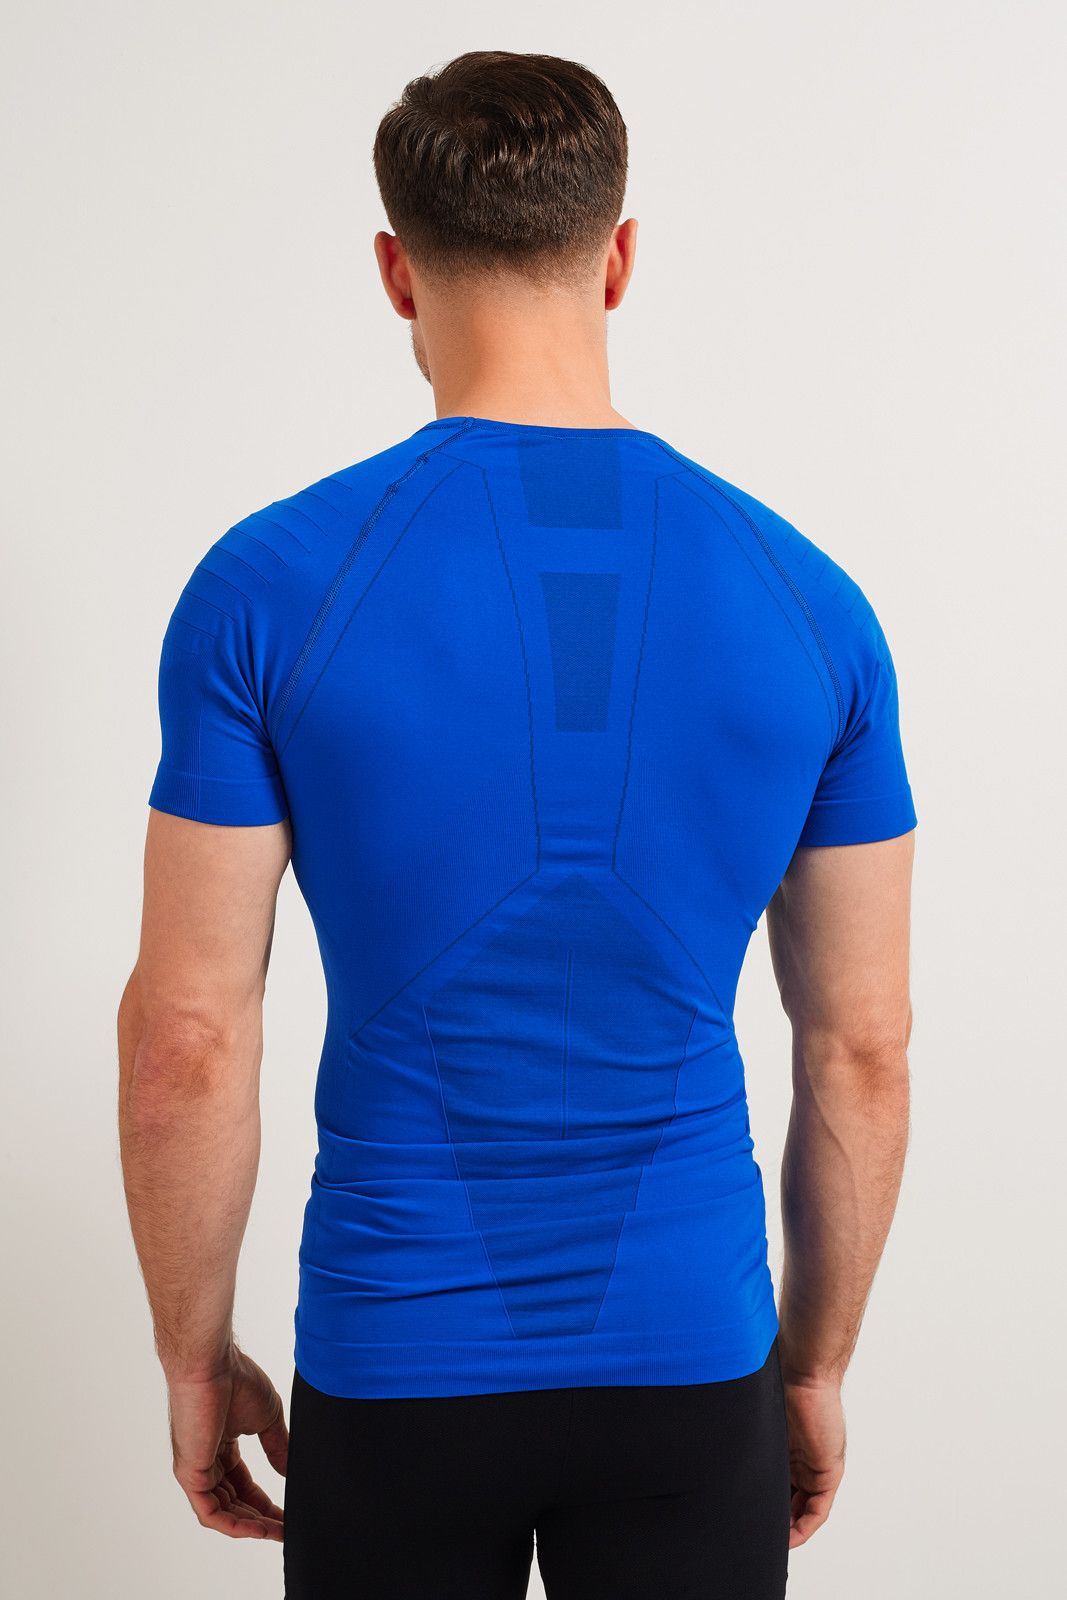 Falke Athletic Short Sleeve T-Shirt image 3 - The Sports Edit